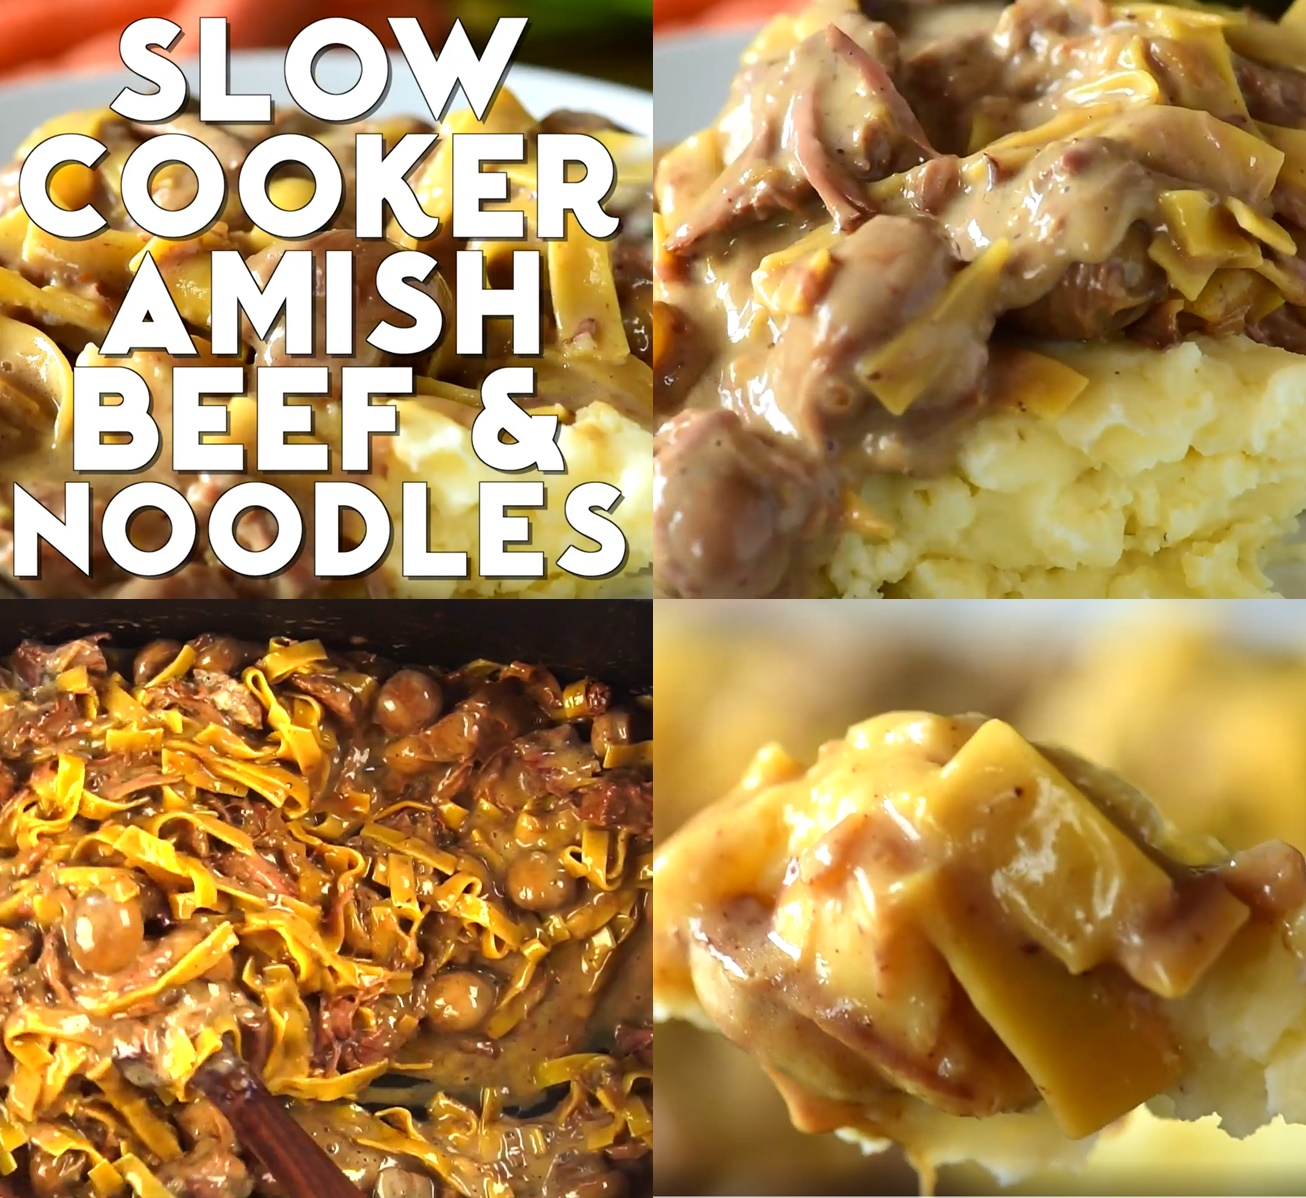 Slow Cooker Amish Beef and Noodles